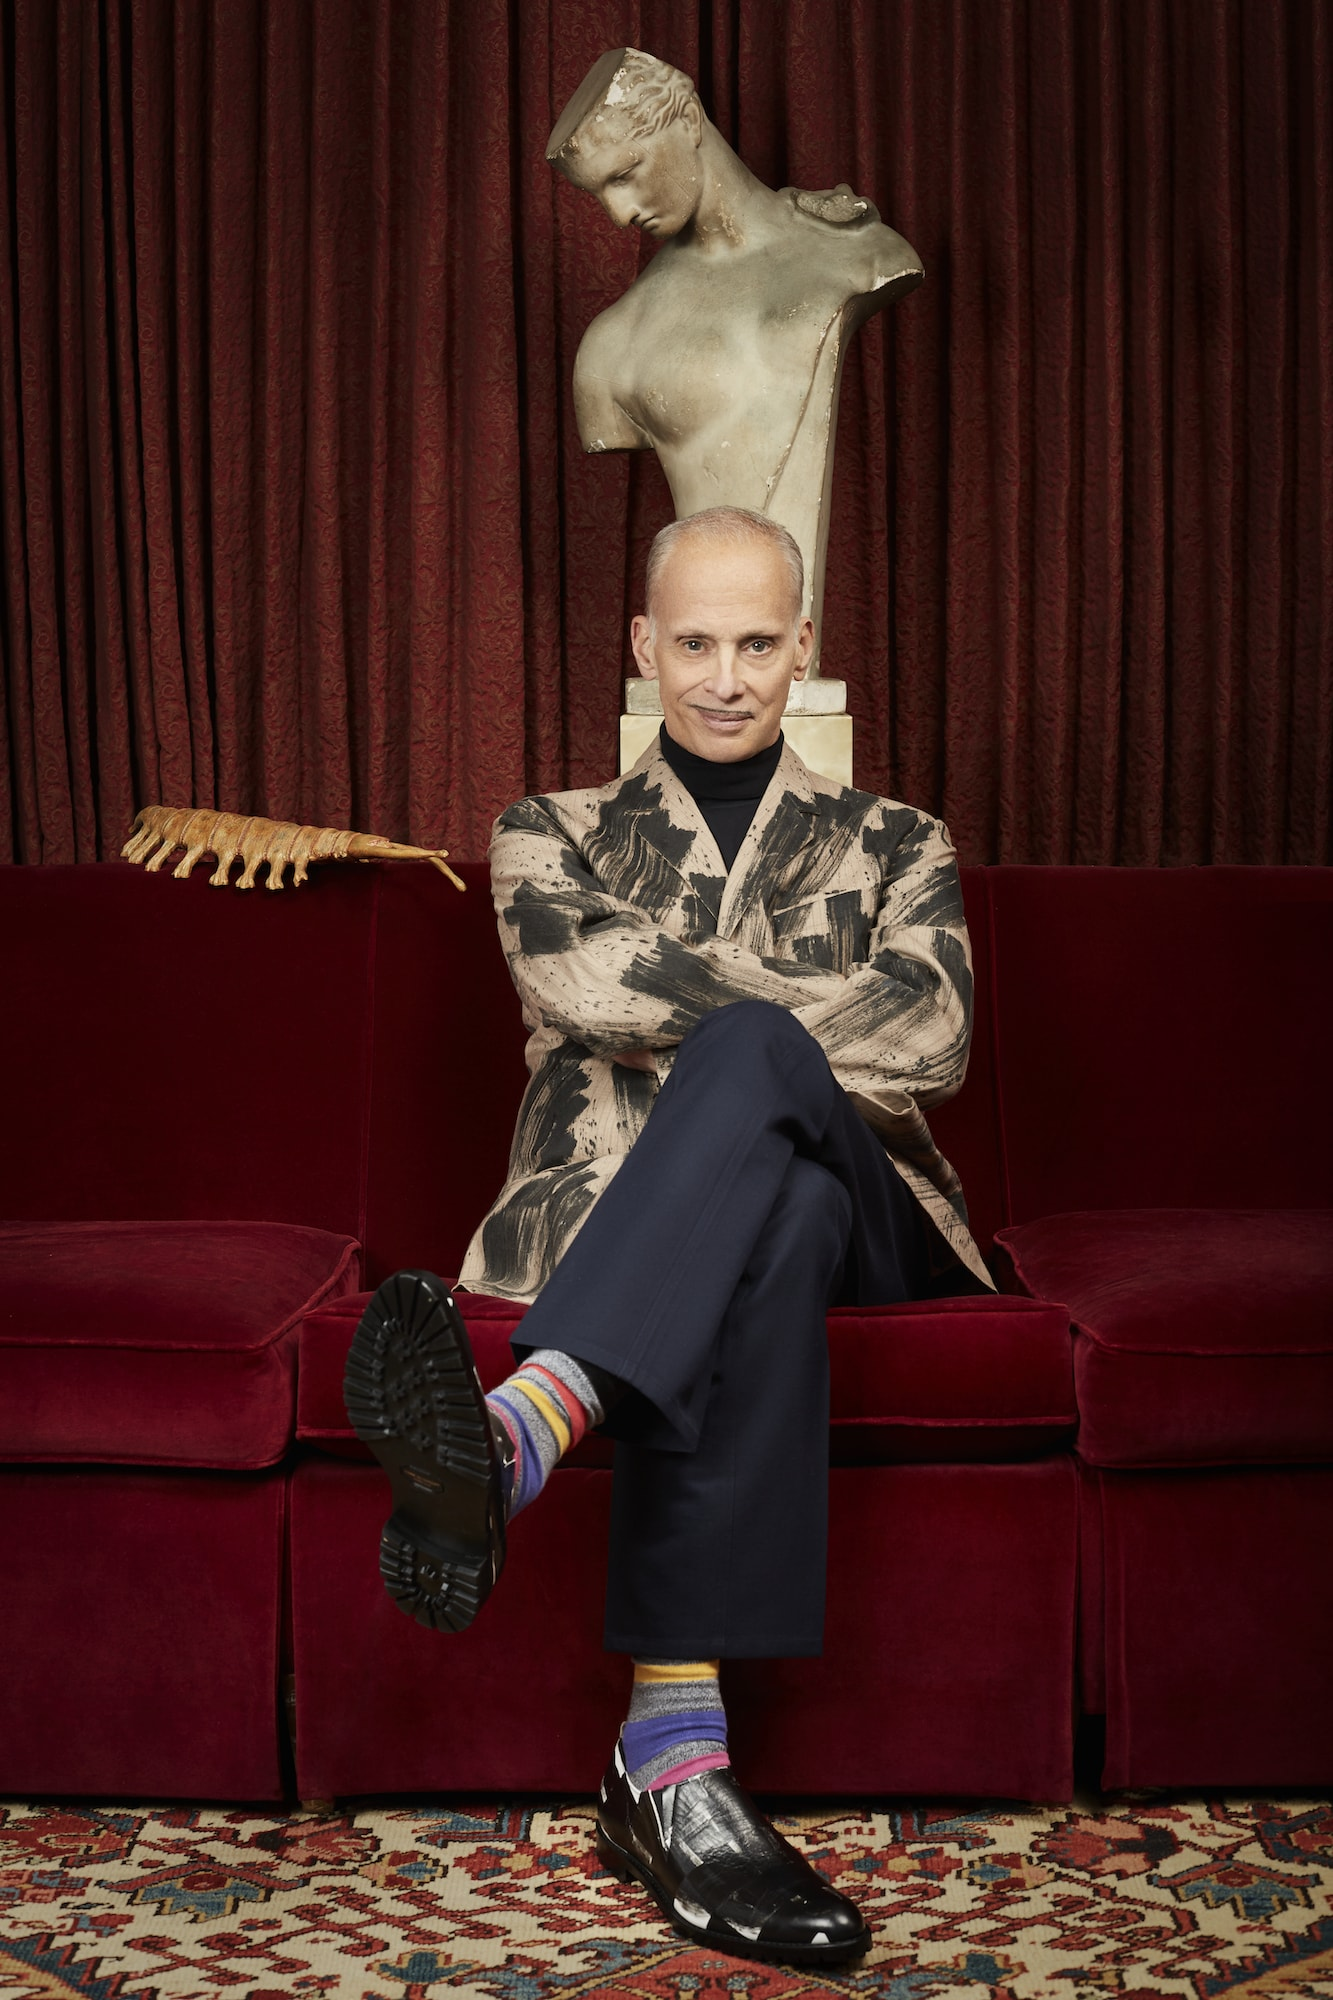 170926_RE_OUT100_JohnWaters_1_059_wk2.jpg